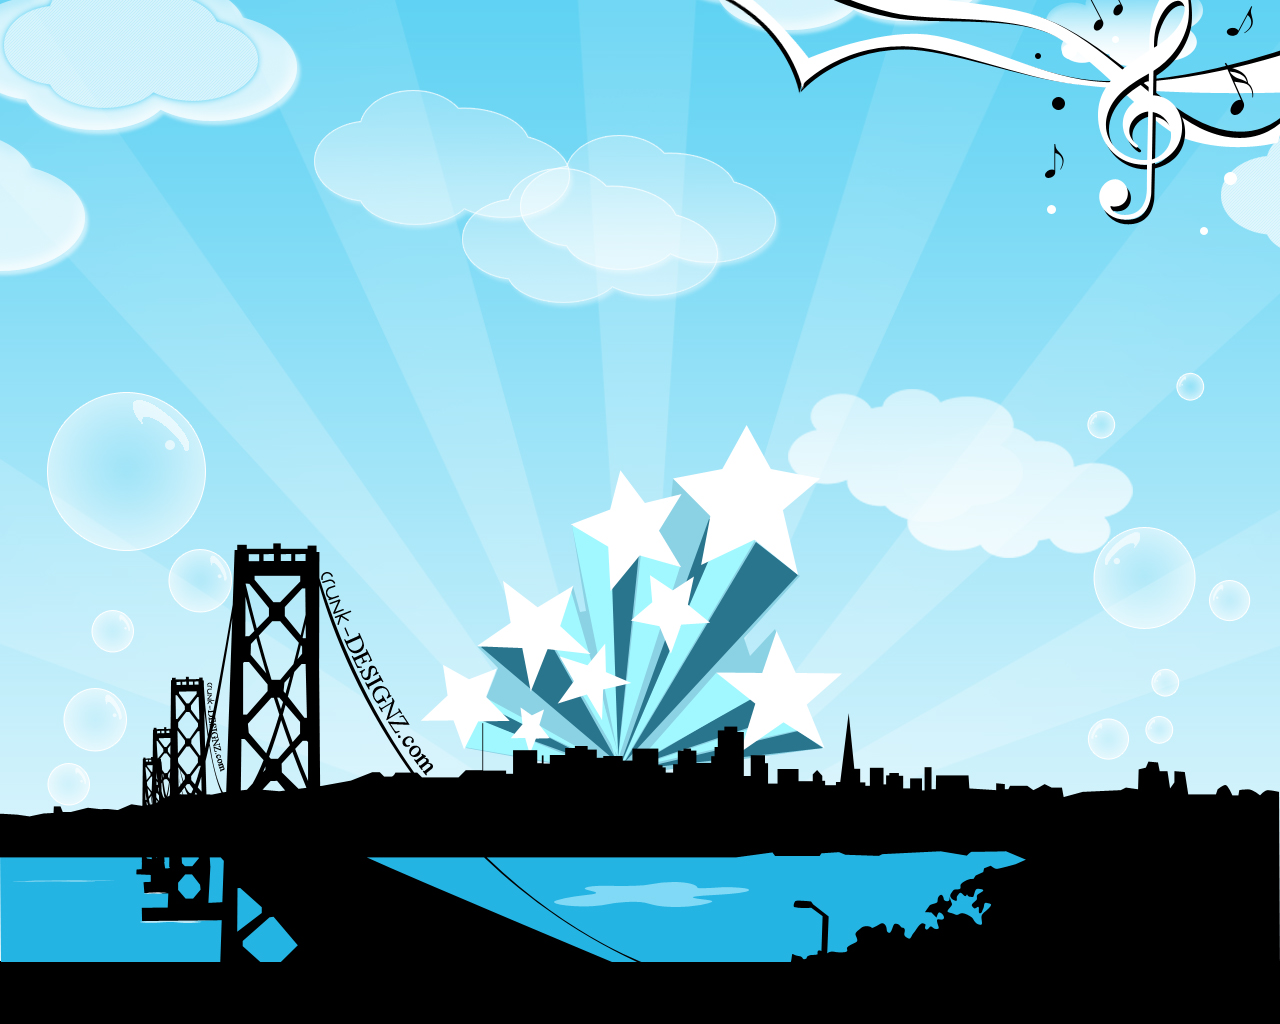 vector, art, vexel, wallpaper, city, bridge